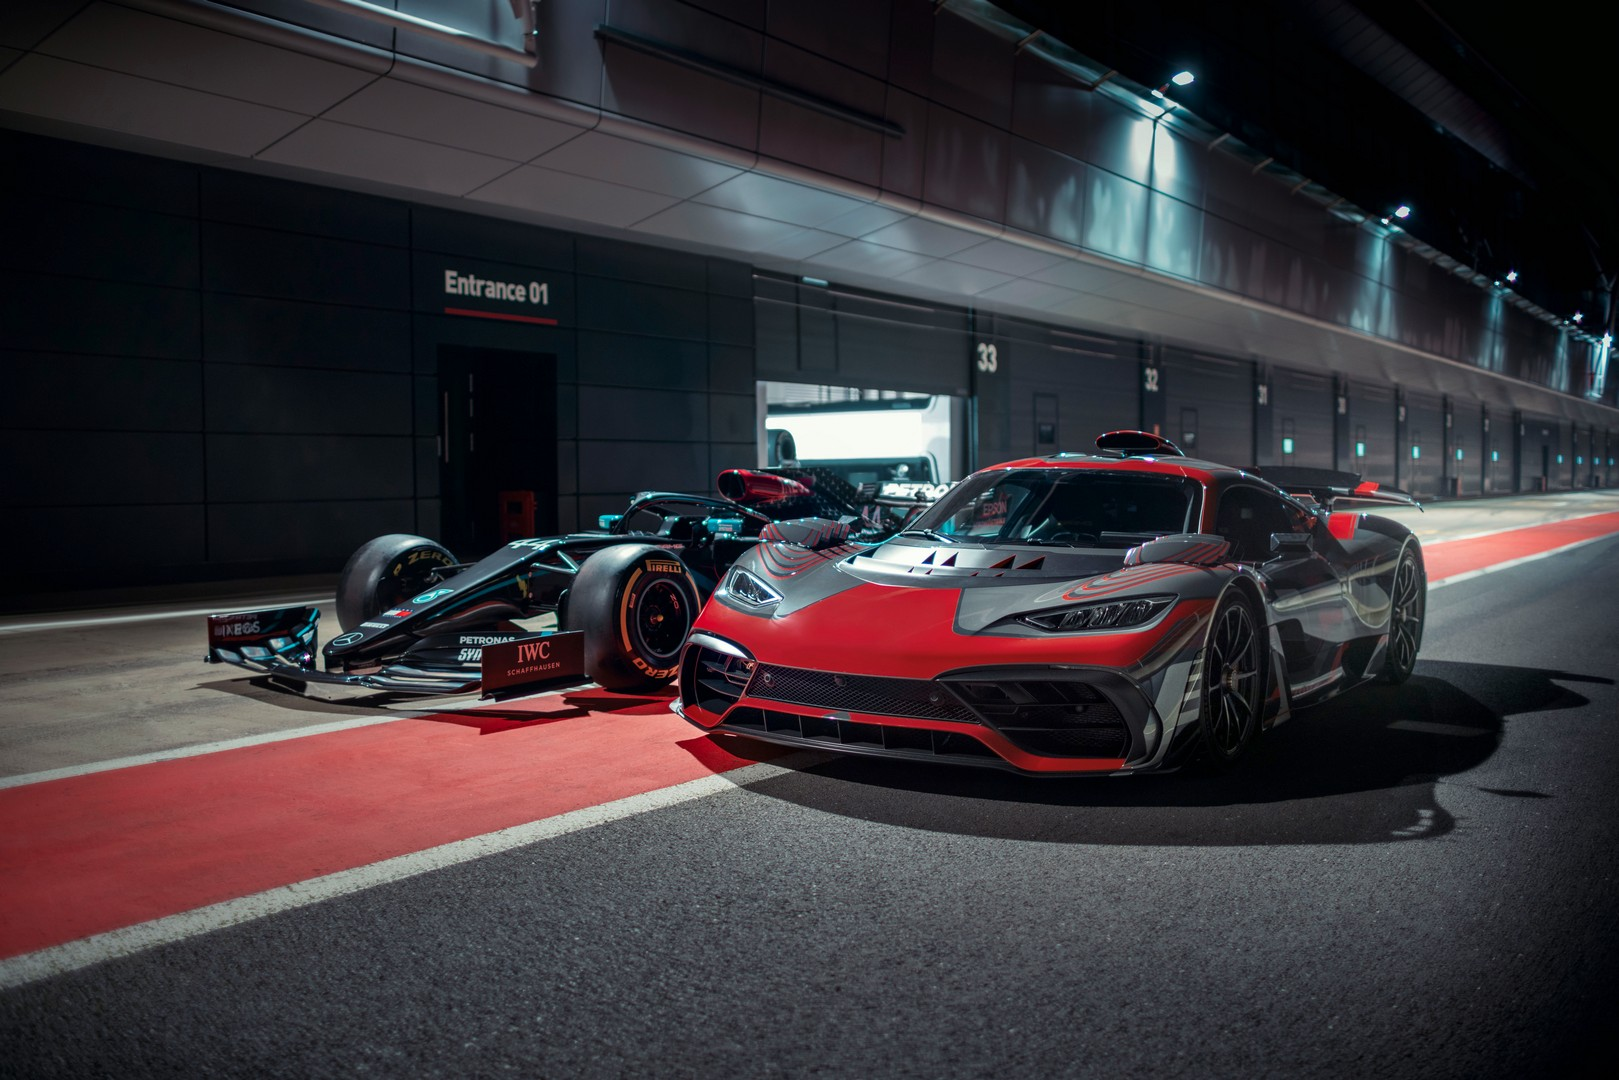 Mercedes-AMG Project One - Mercedes F1